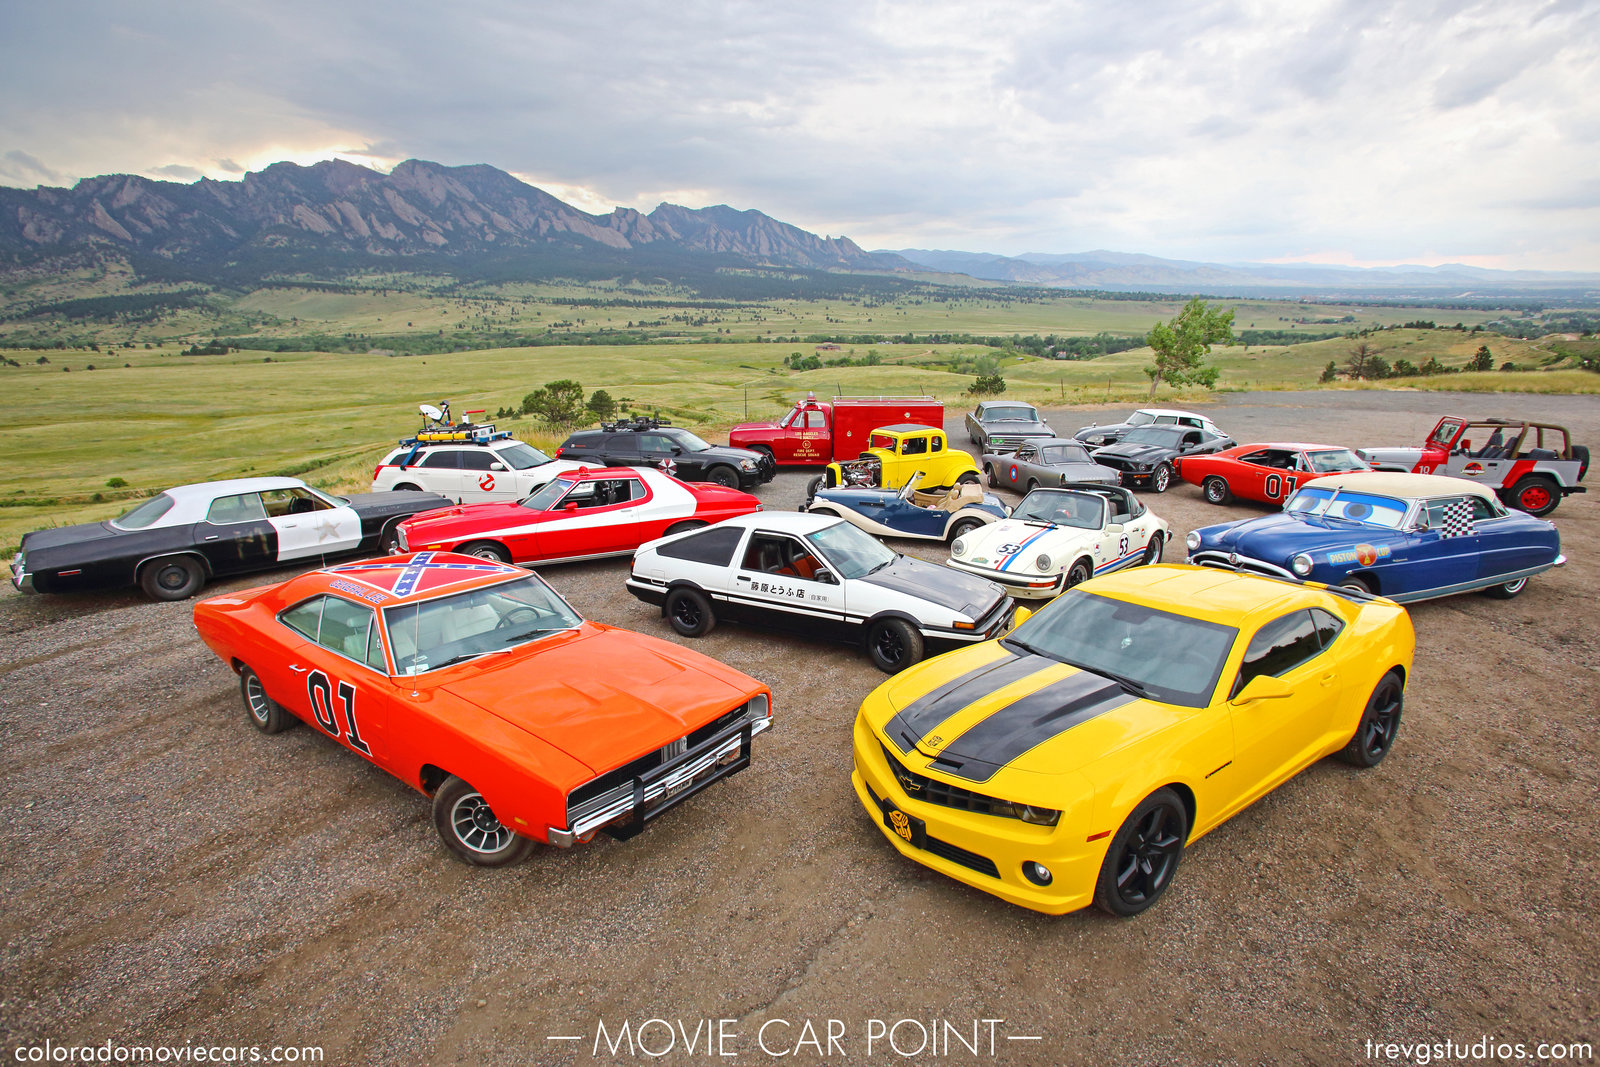 Top 5 Iconic Movie Cars Of All Time! - The Auto Parts Warehouse Blog